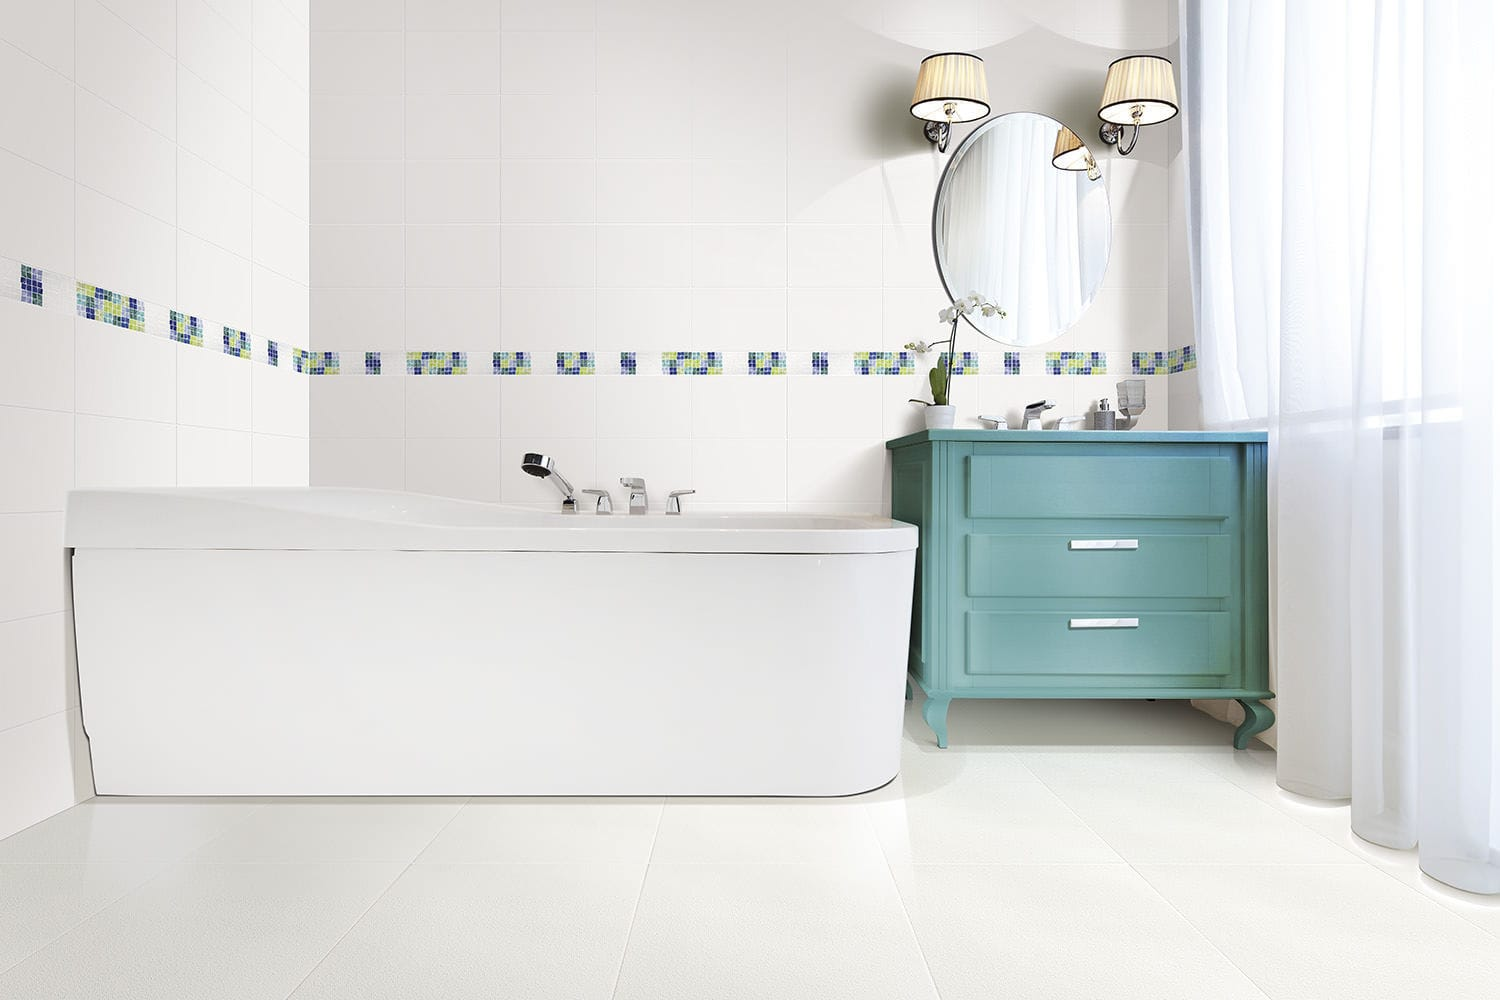 Bathroom tile / floor / ceramic / high-gloss - ARTICA - Alfagres S.A.